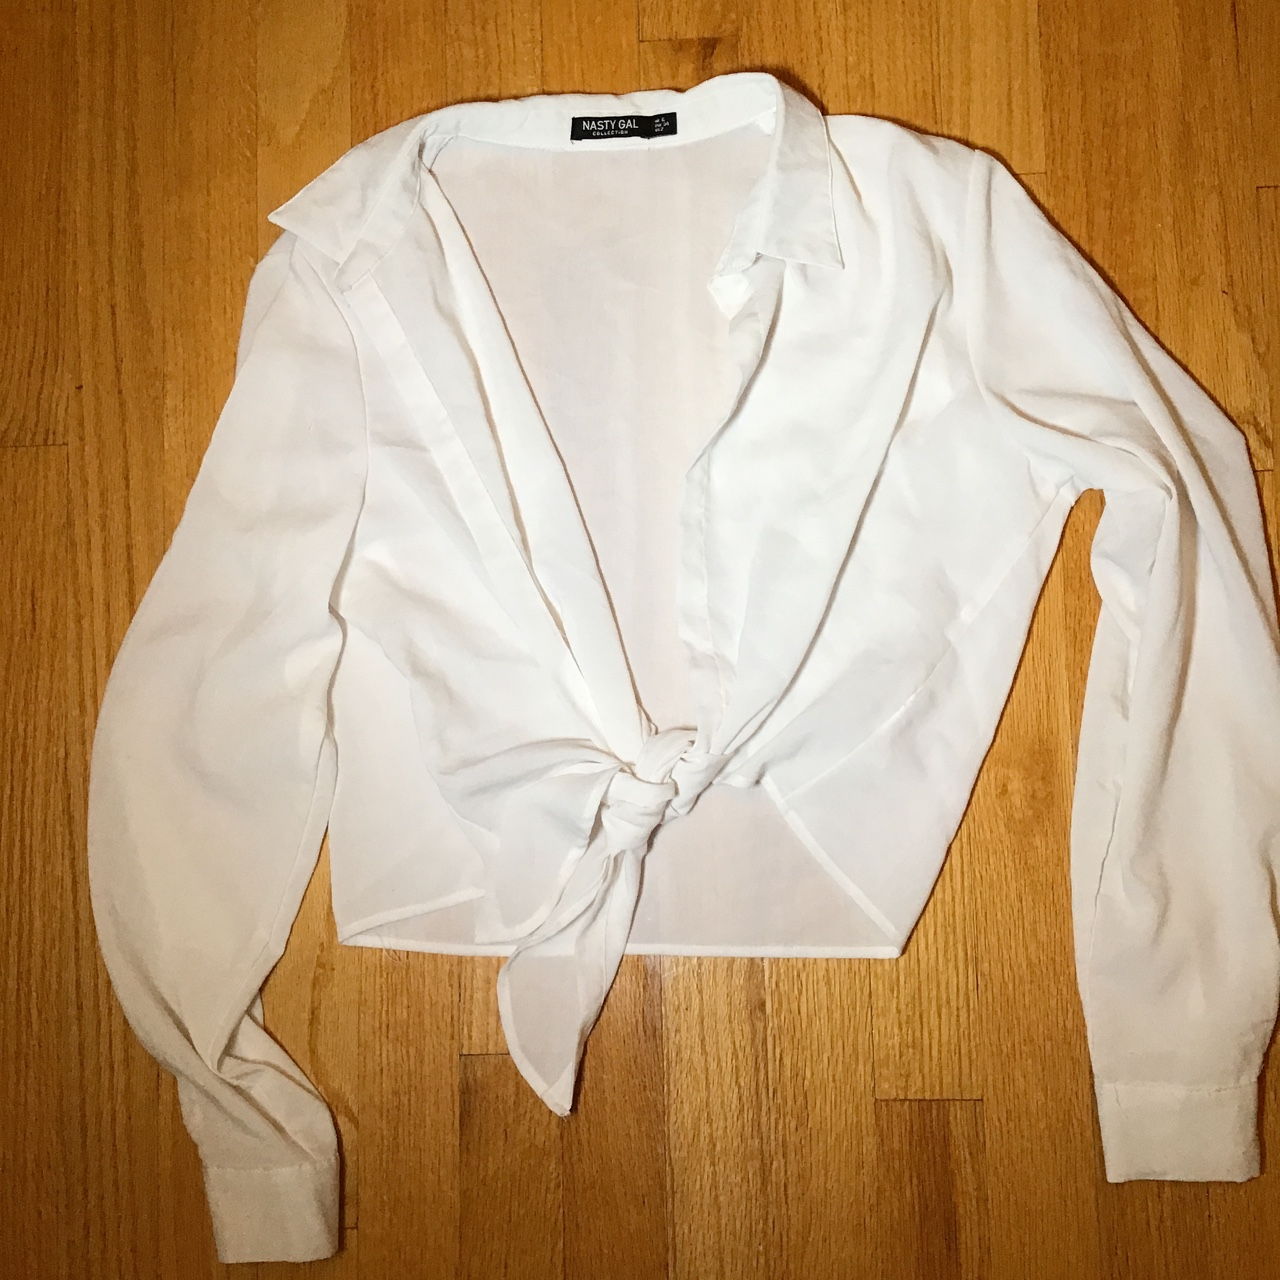 Product Image 1 - Nasty Gal white tie blouse